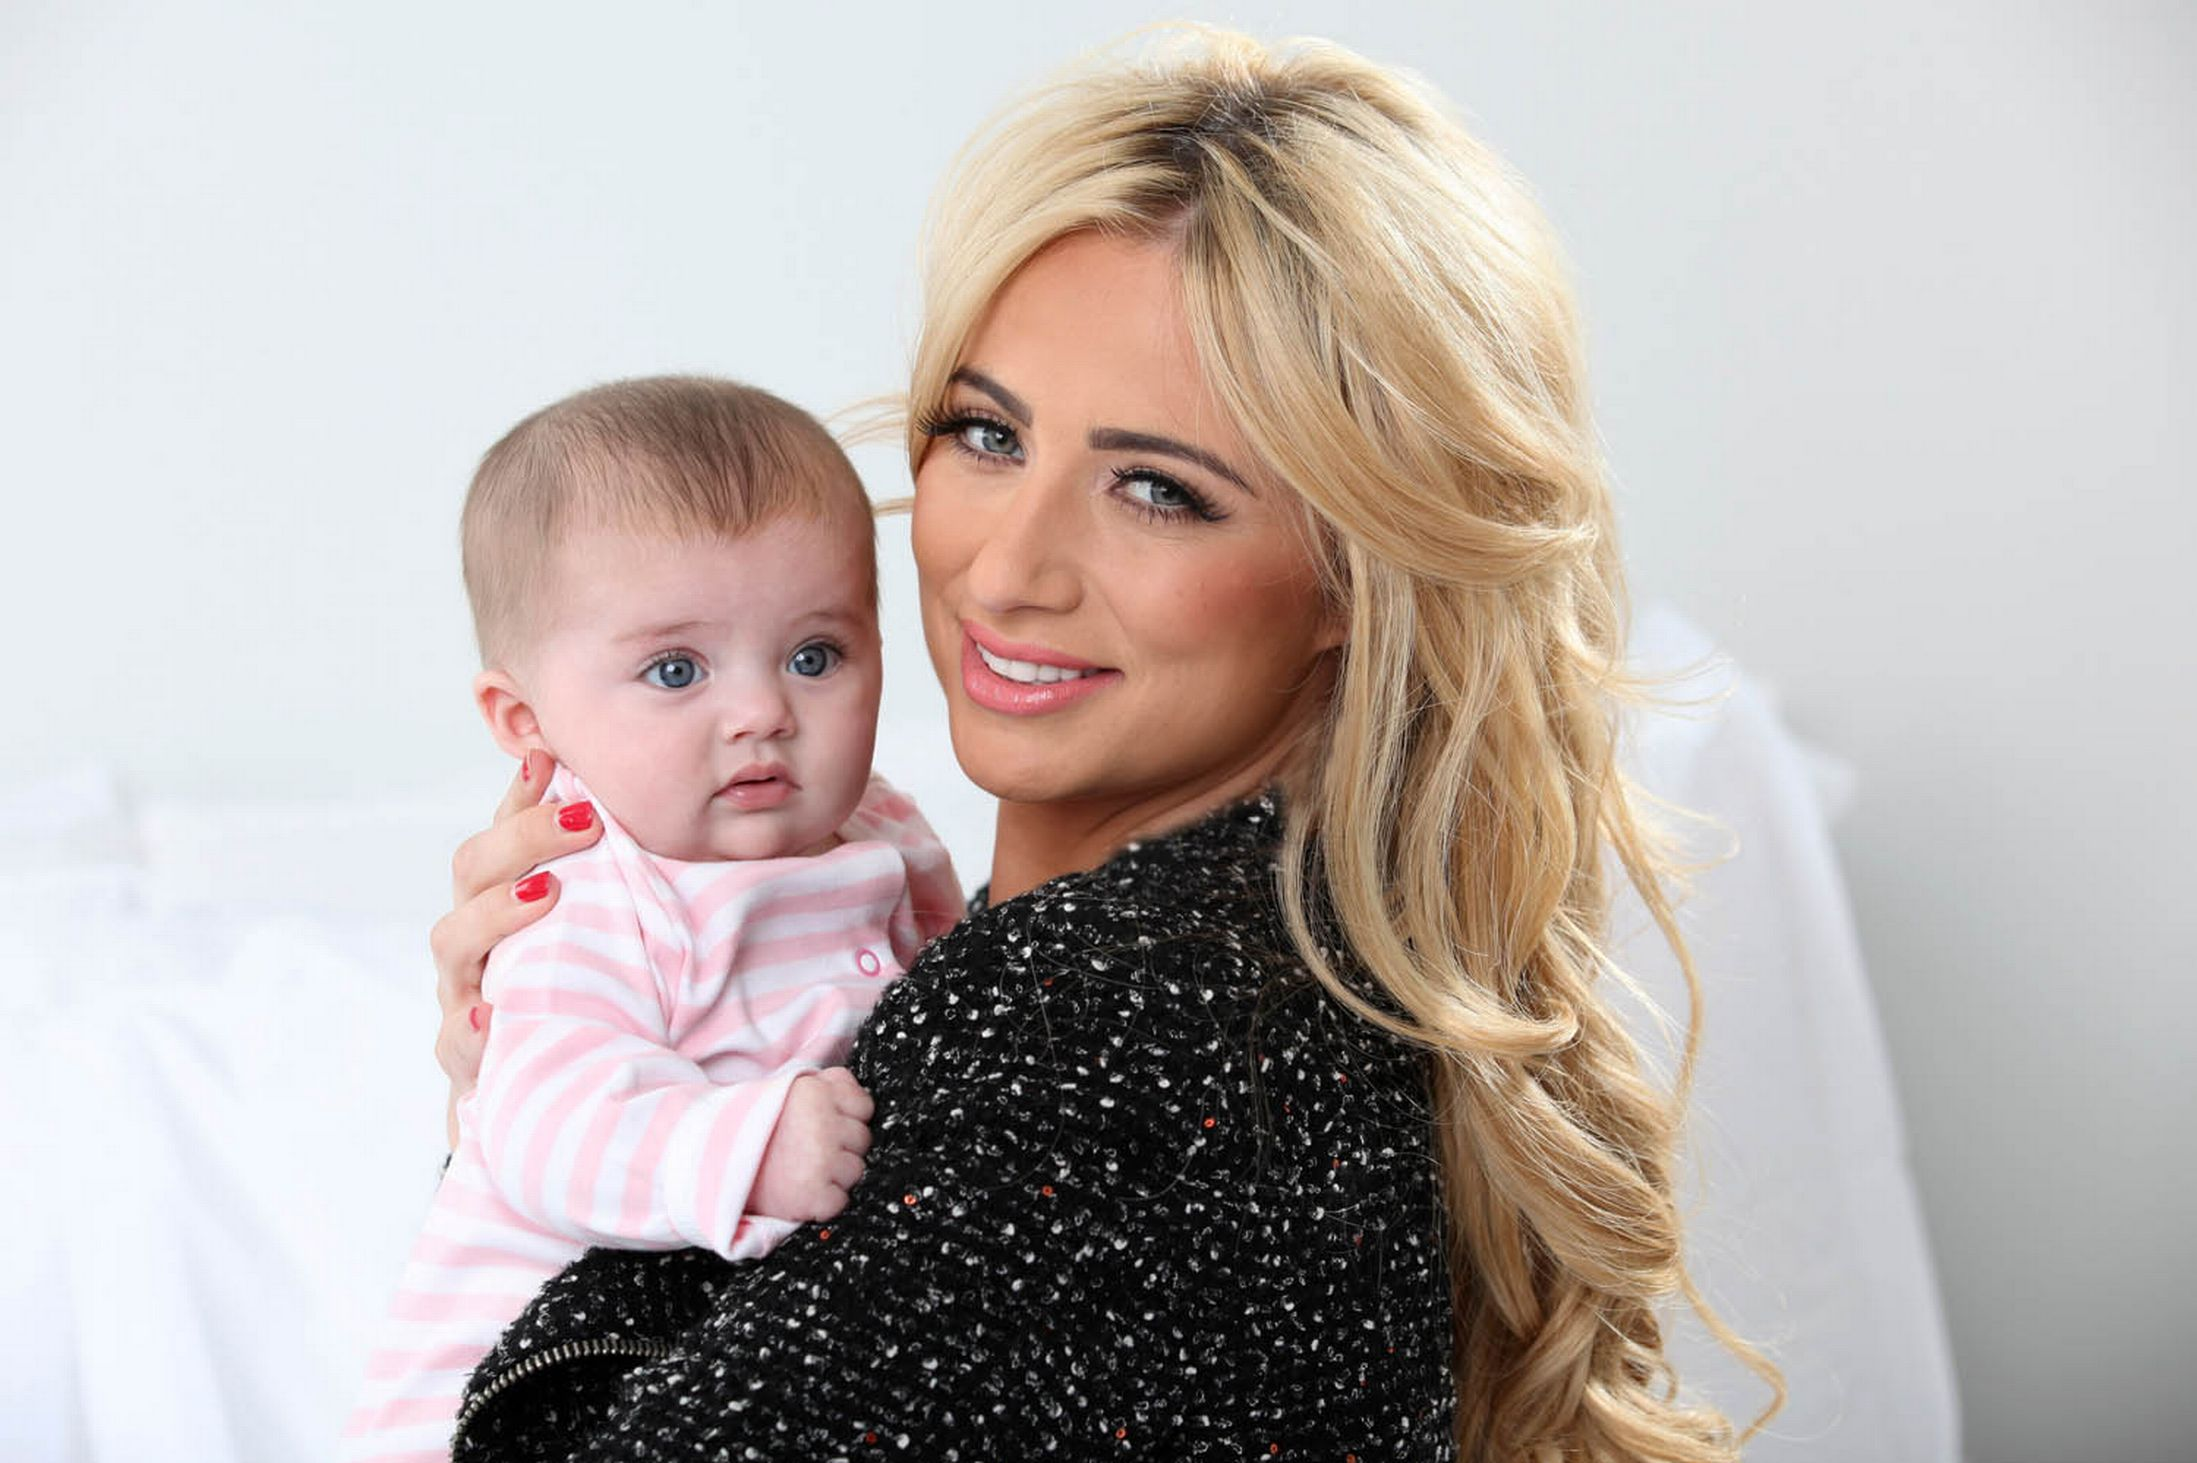 Chantelle Houghton with her baby daughter Dolly